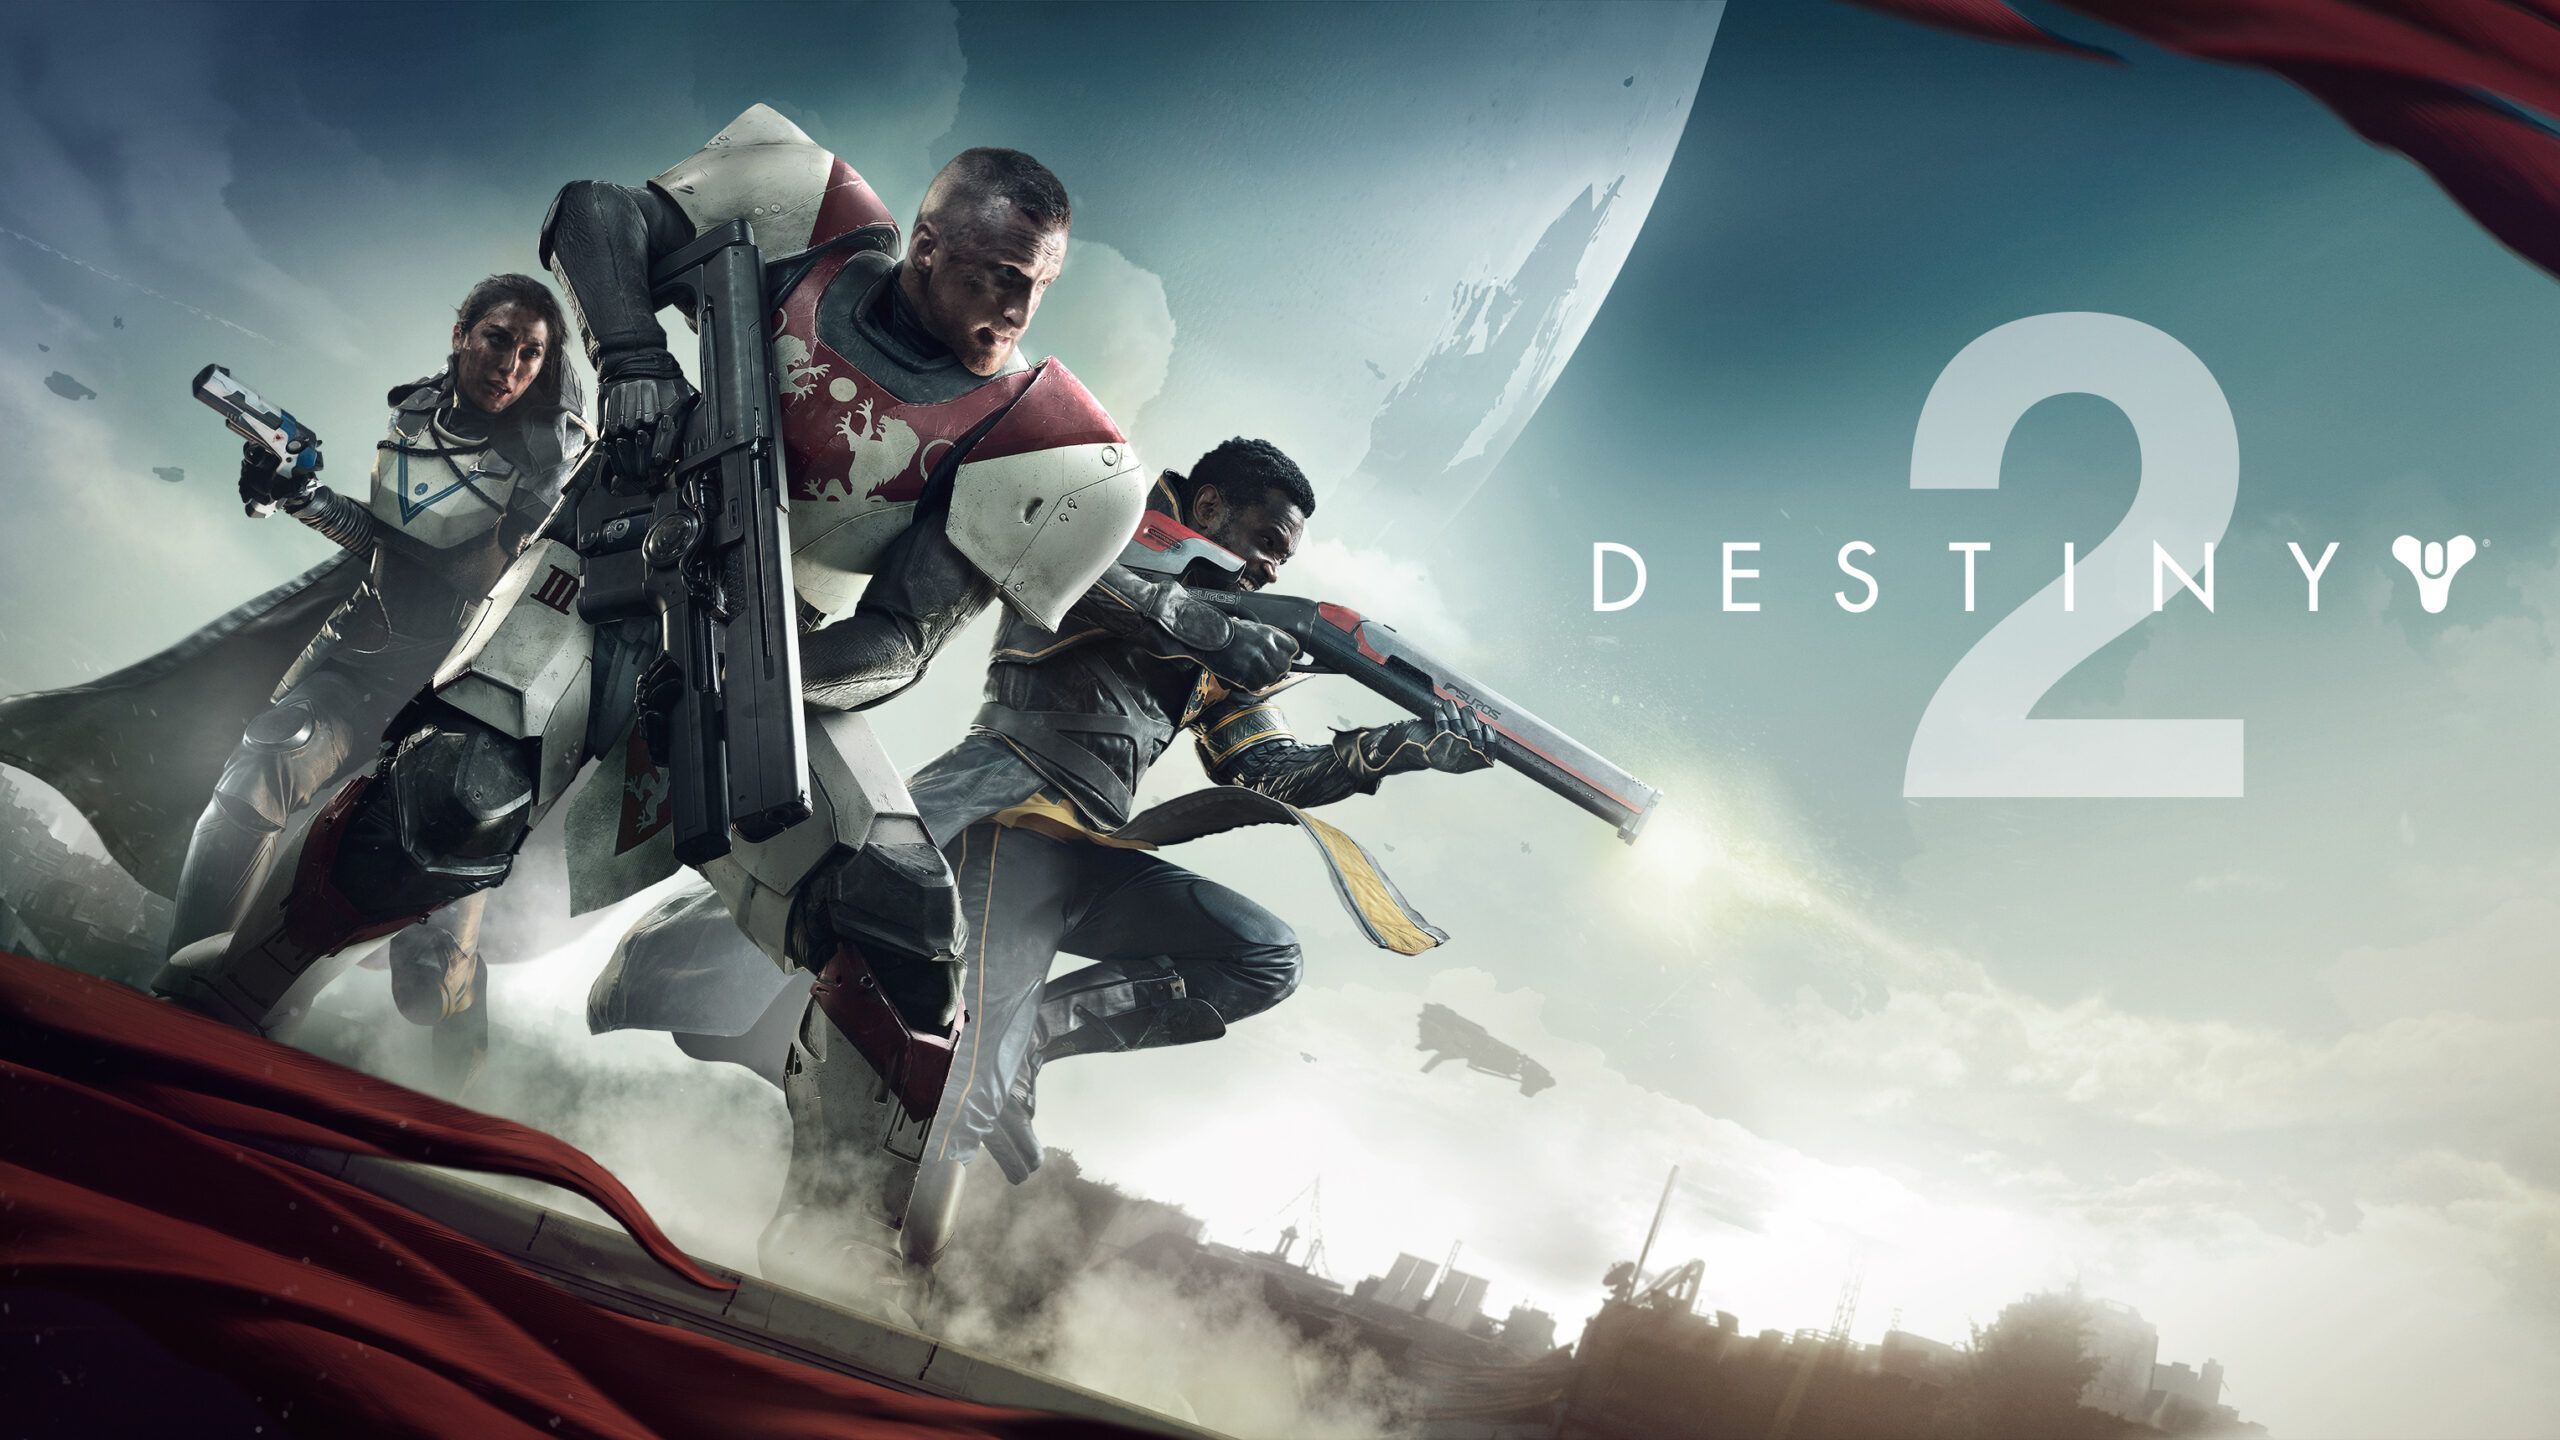 Destiny 2 Titan Wallpaper in 2020 Cool wallpapers for